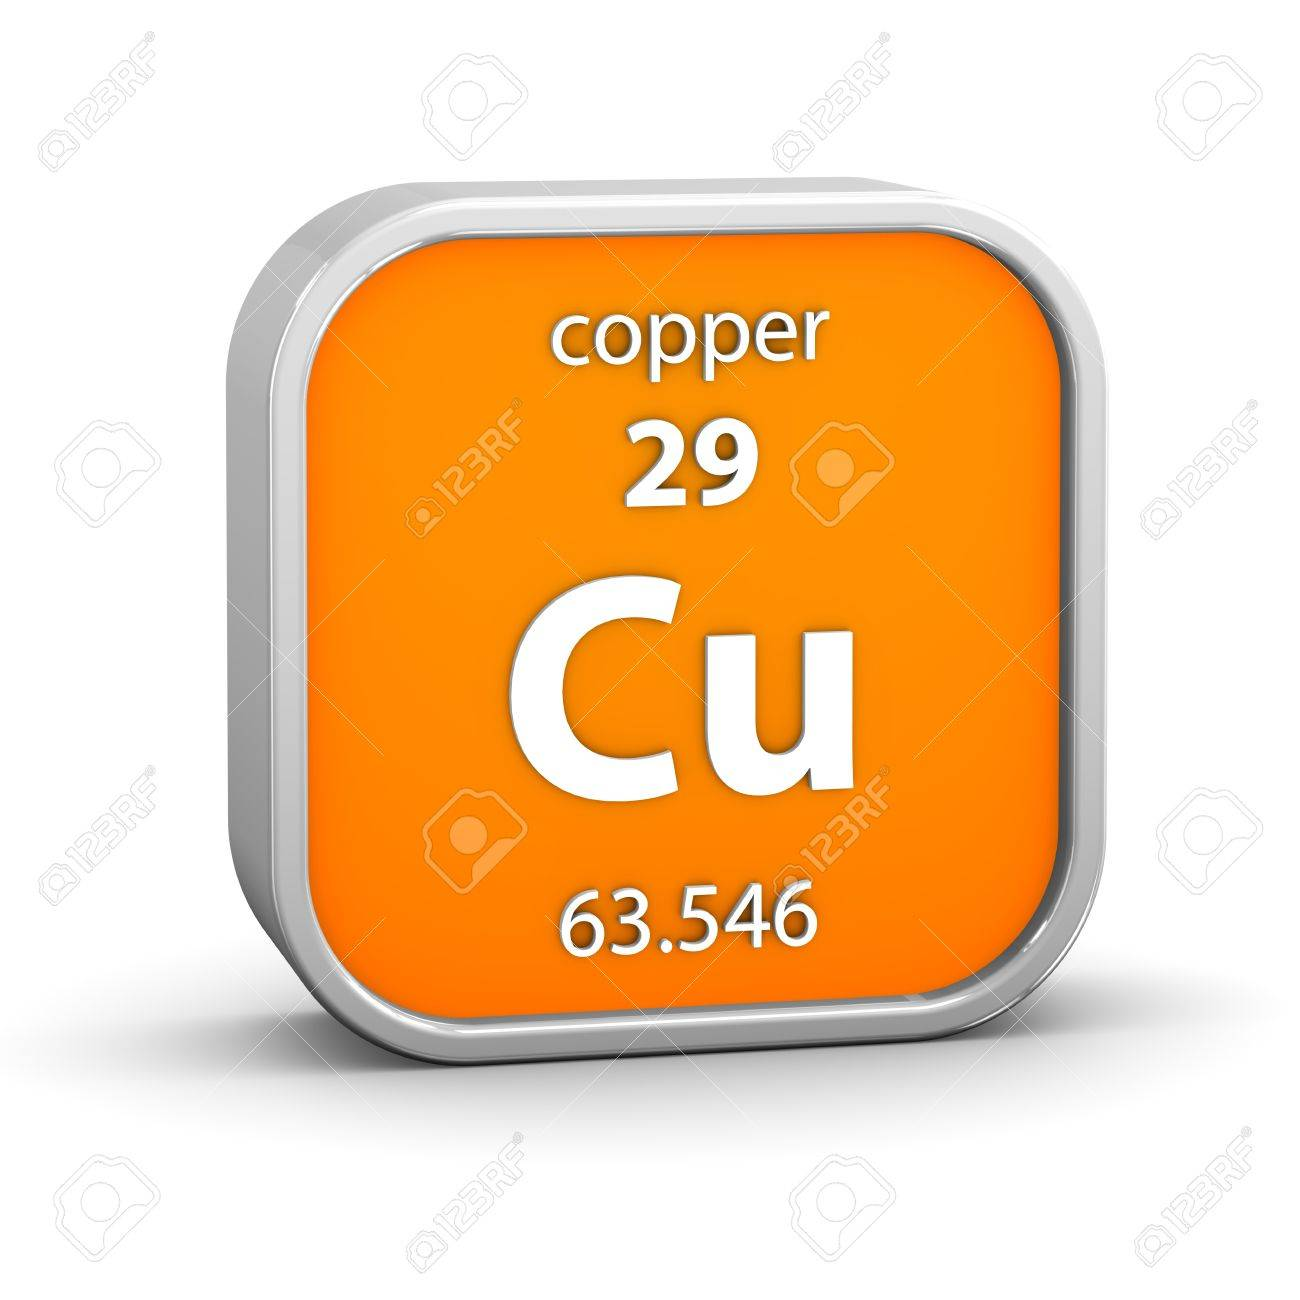 Copper in periodic table images periodic table images copper in periodic table images periodic table images copper in periodic table images periodic table images gamestrikefo Images